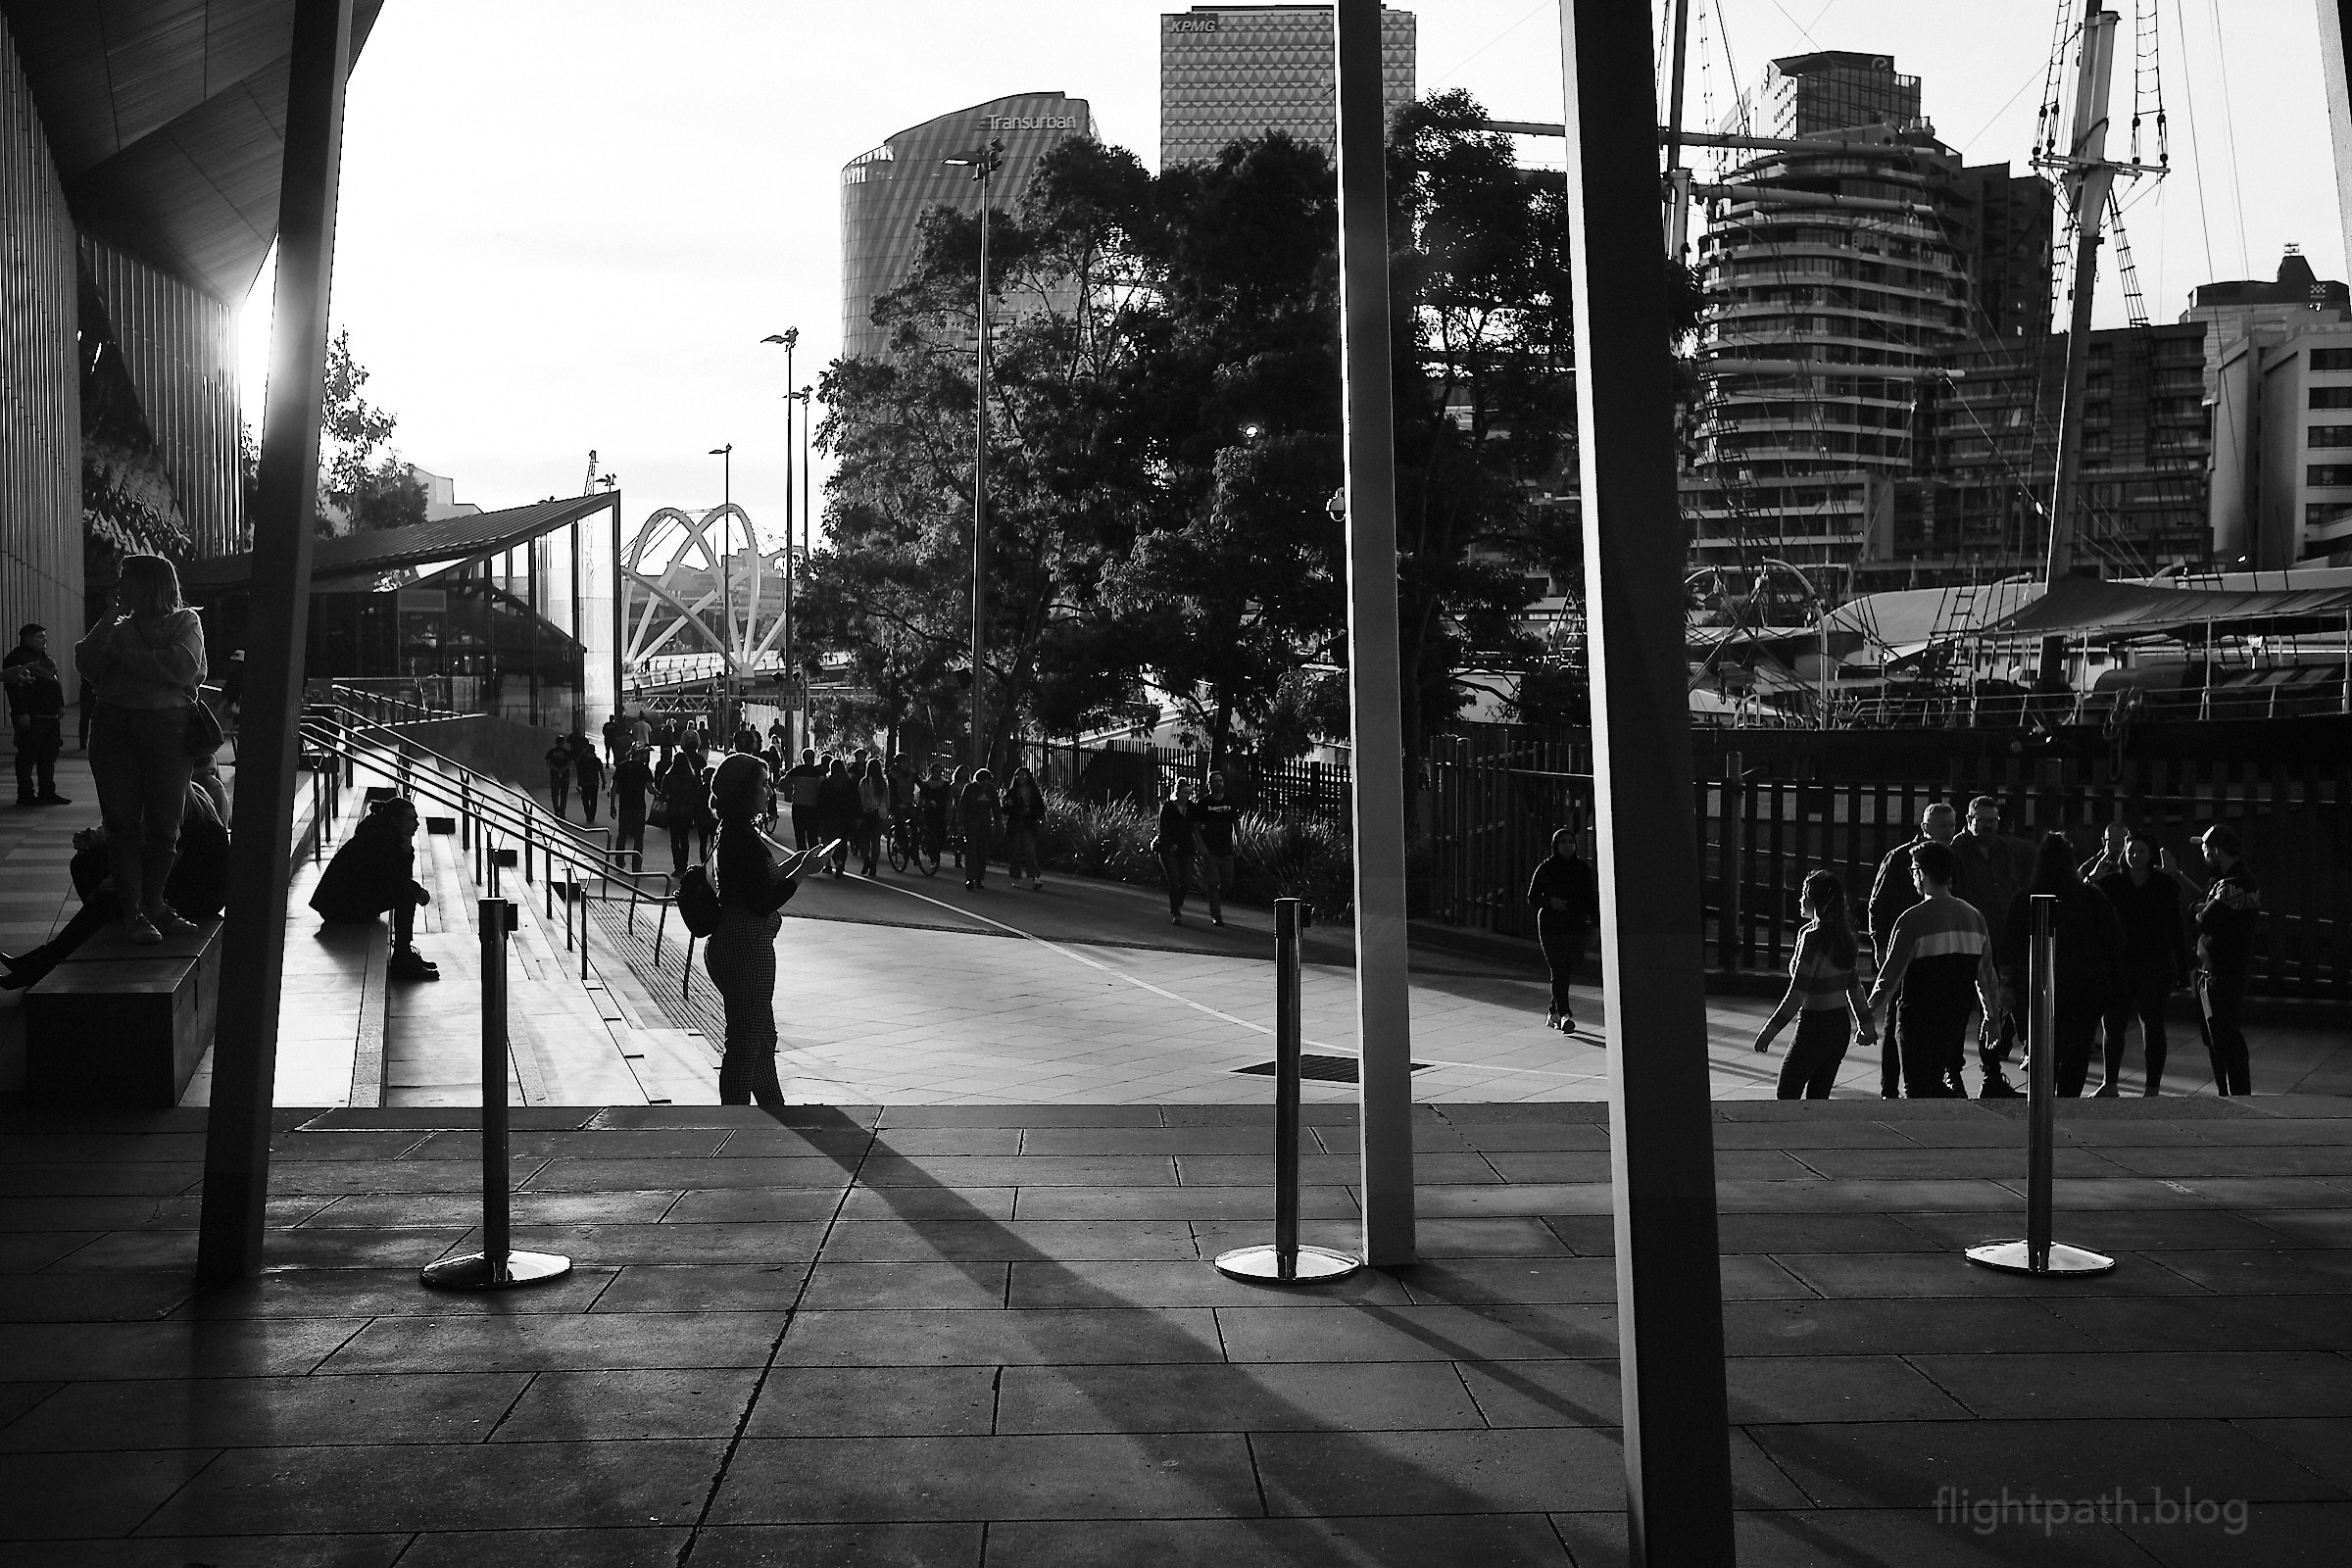 """A number of people are milling about outside the Melbourne Convention Centre. A woman in near-silhouette is using her phone. The word """"urban"""" can be seen on a building."""